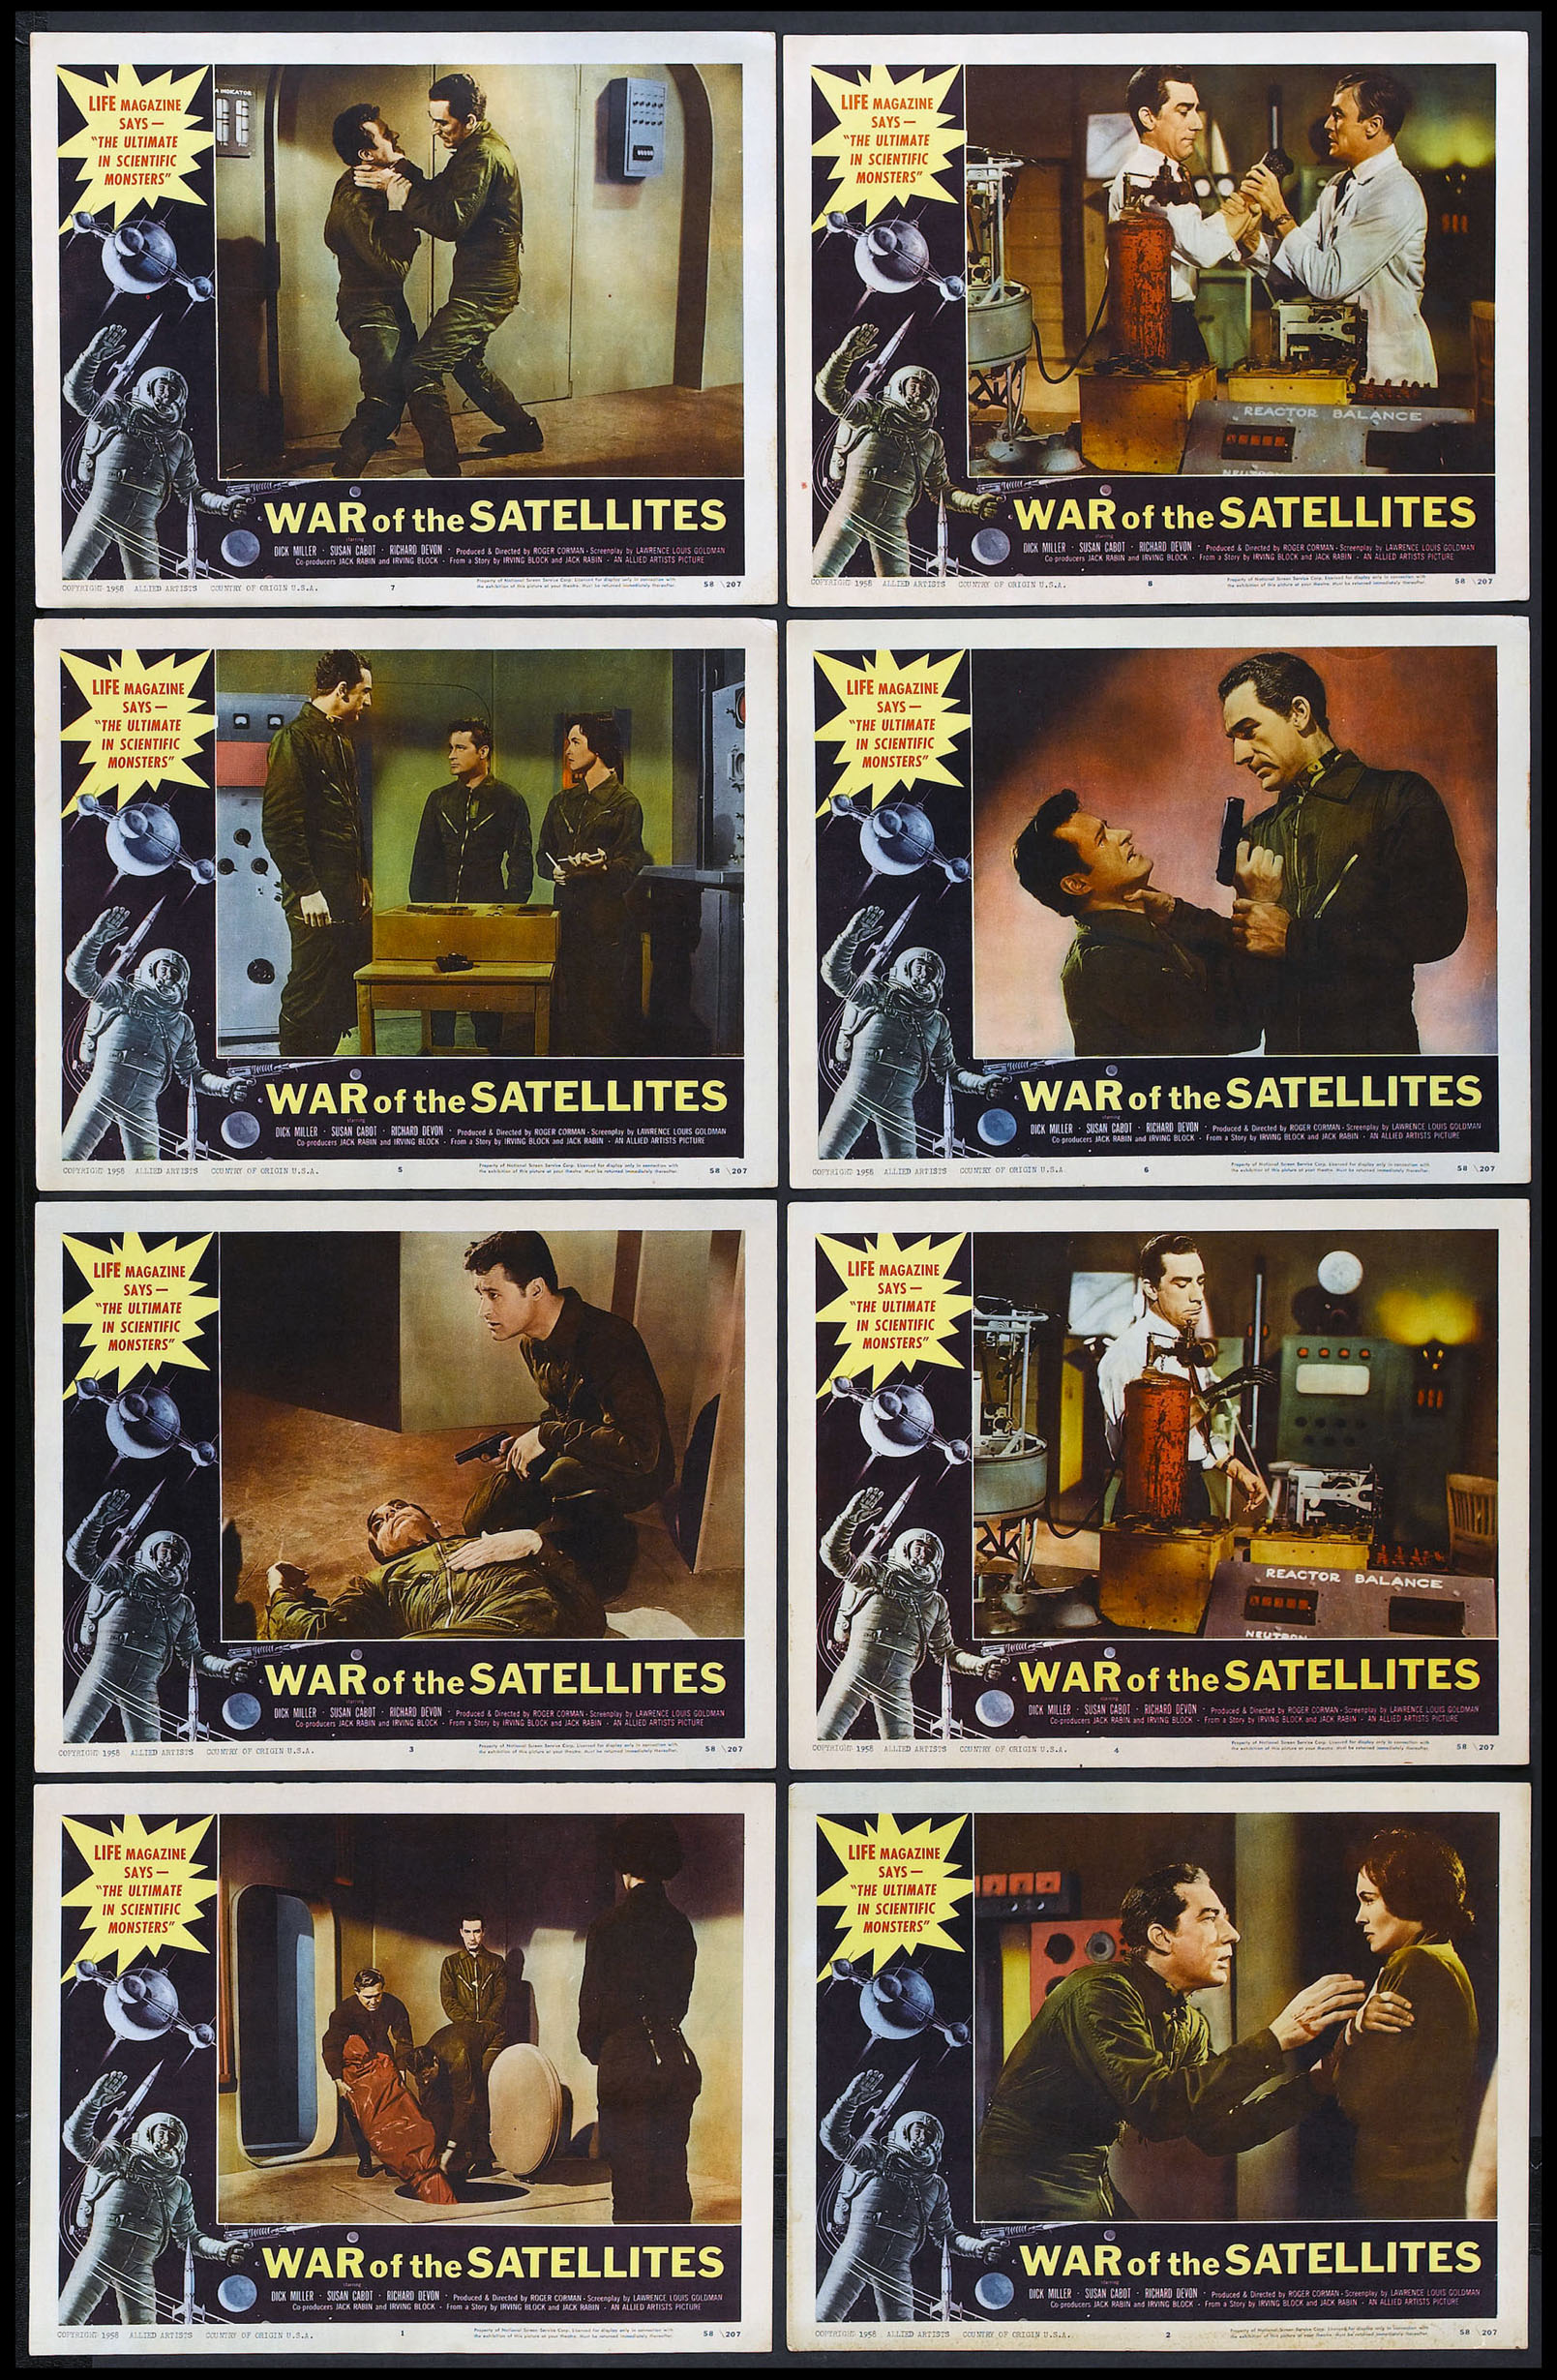 WAR OF THE SATELLITES @ FilmPosters.com